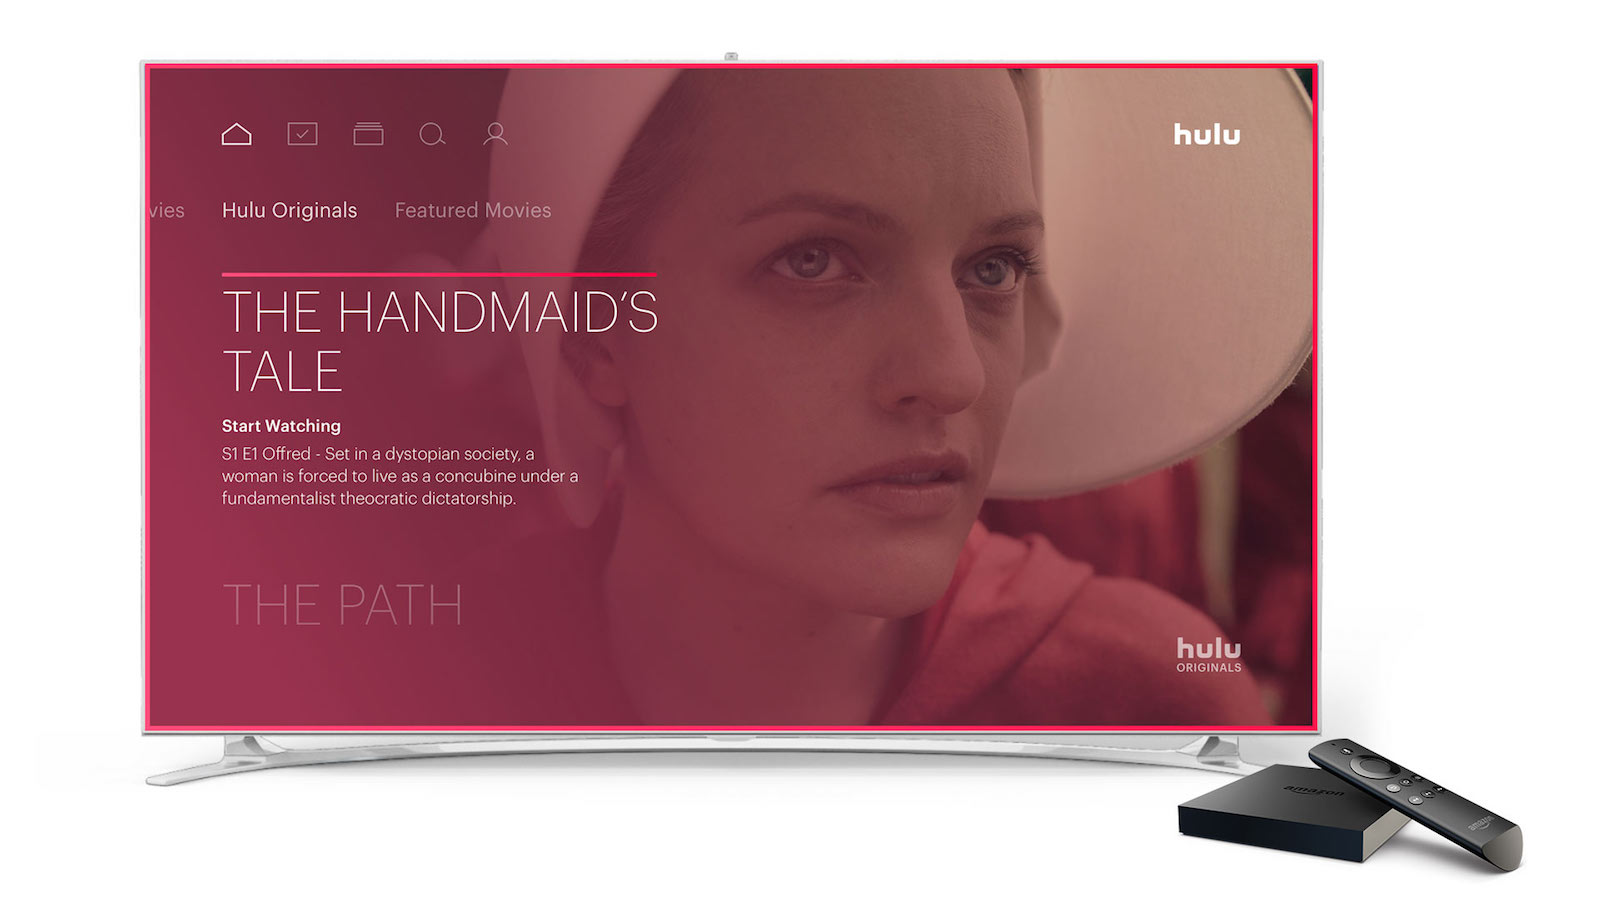 Hulus Live Tv Service Is Now Available On Amazon Fire Tv